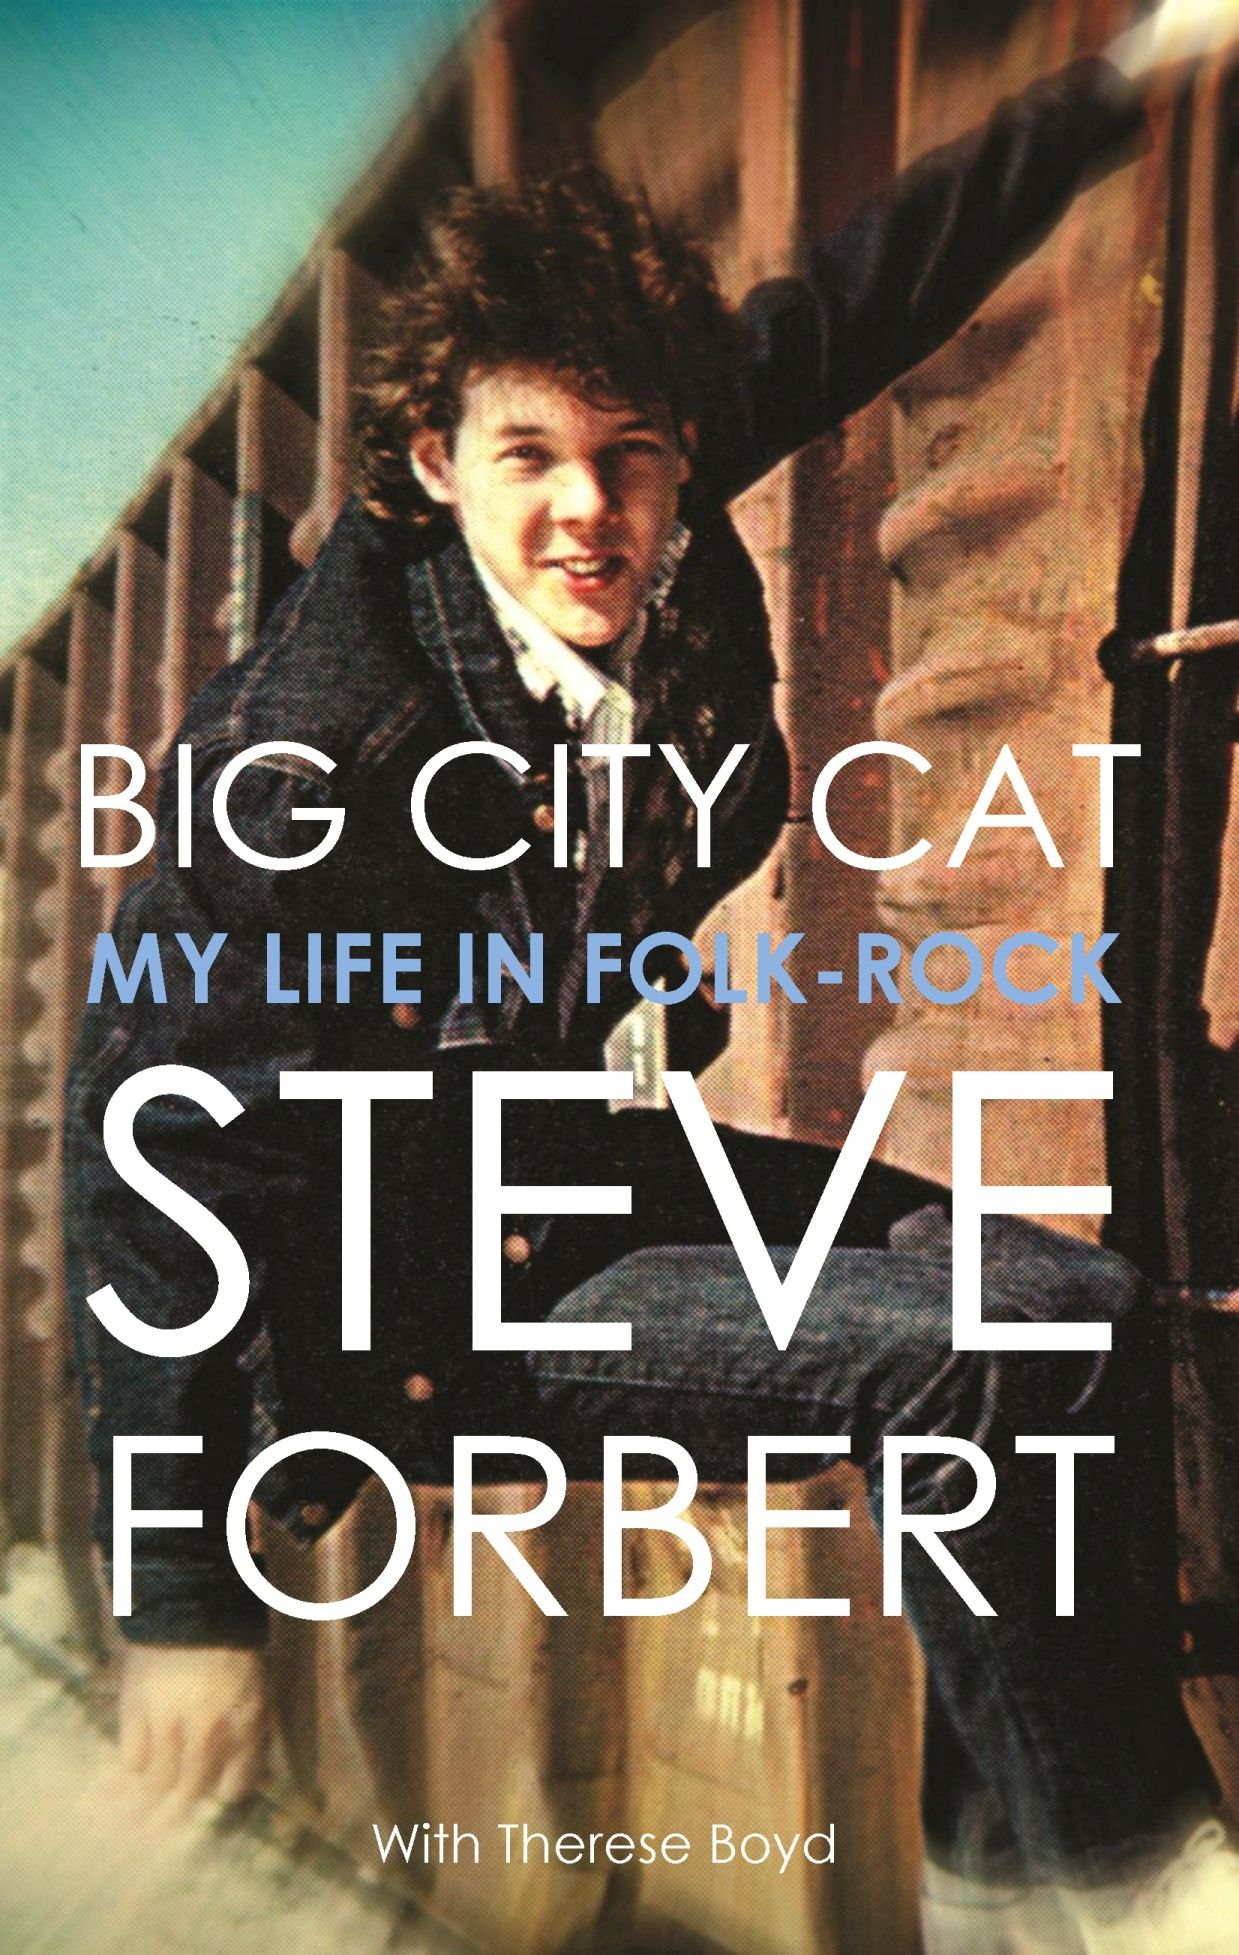 Big City Cat Steve Forbert